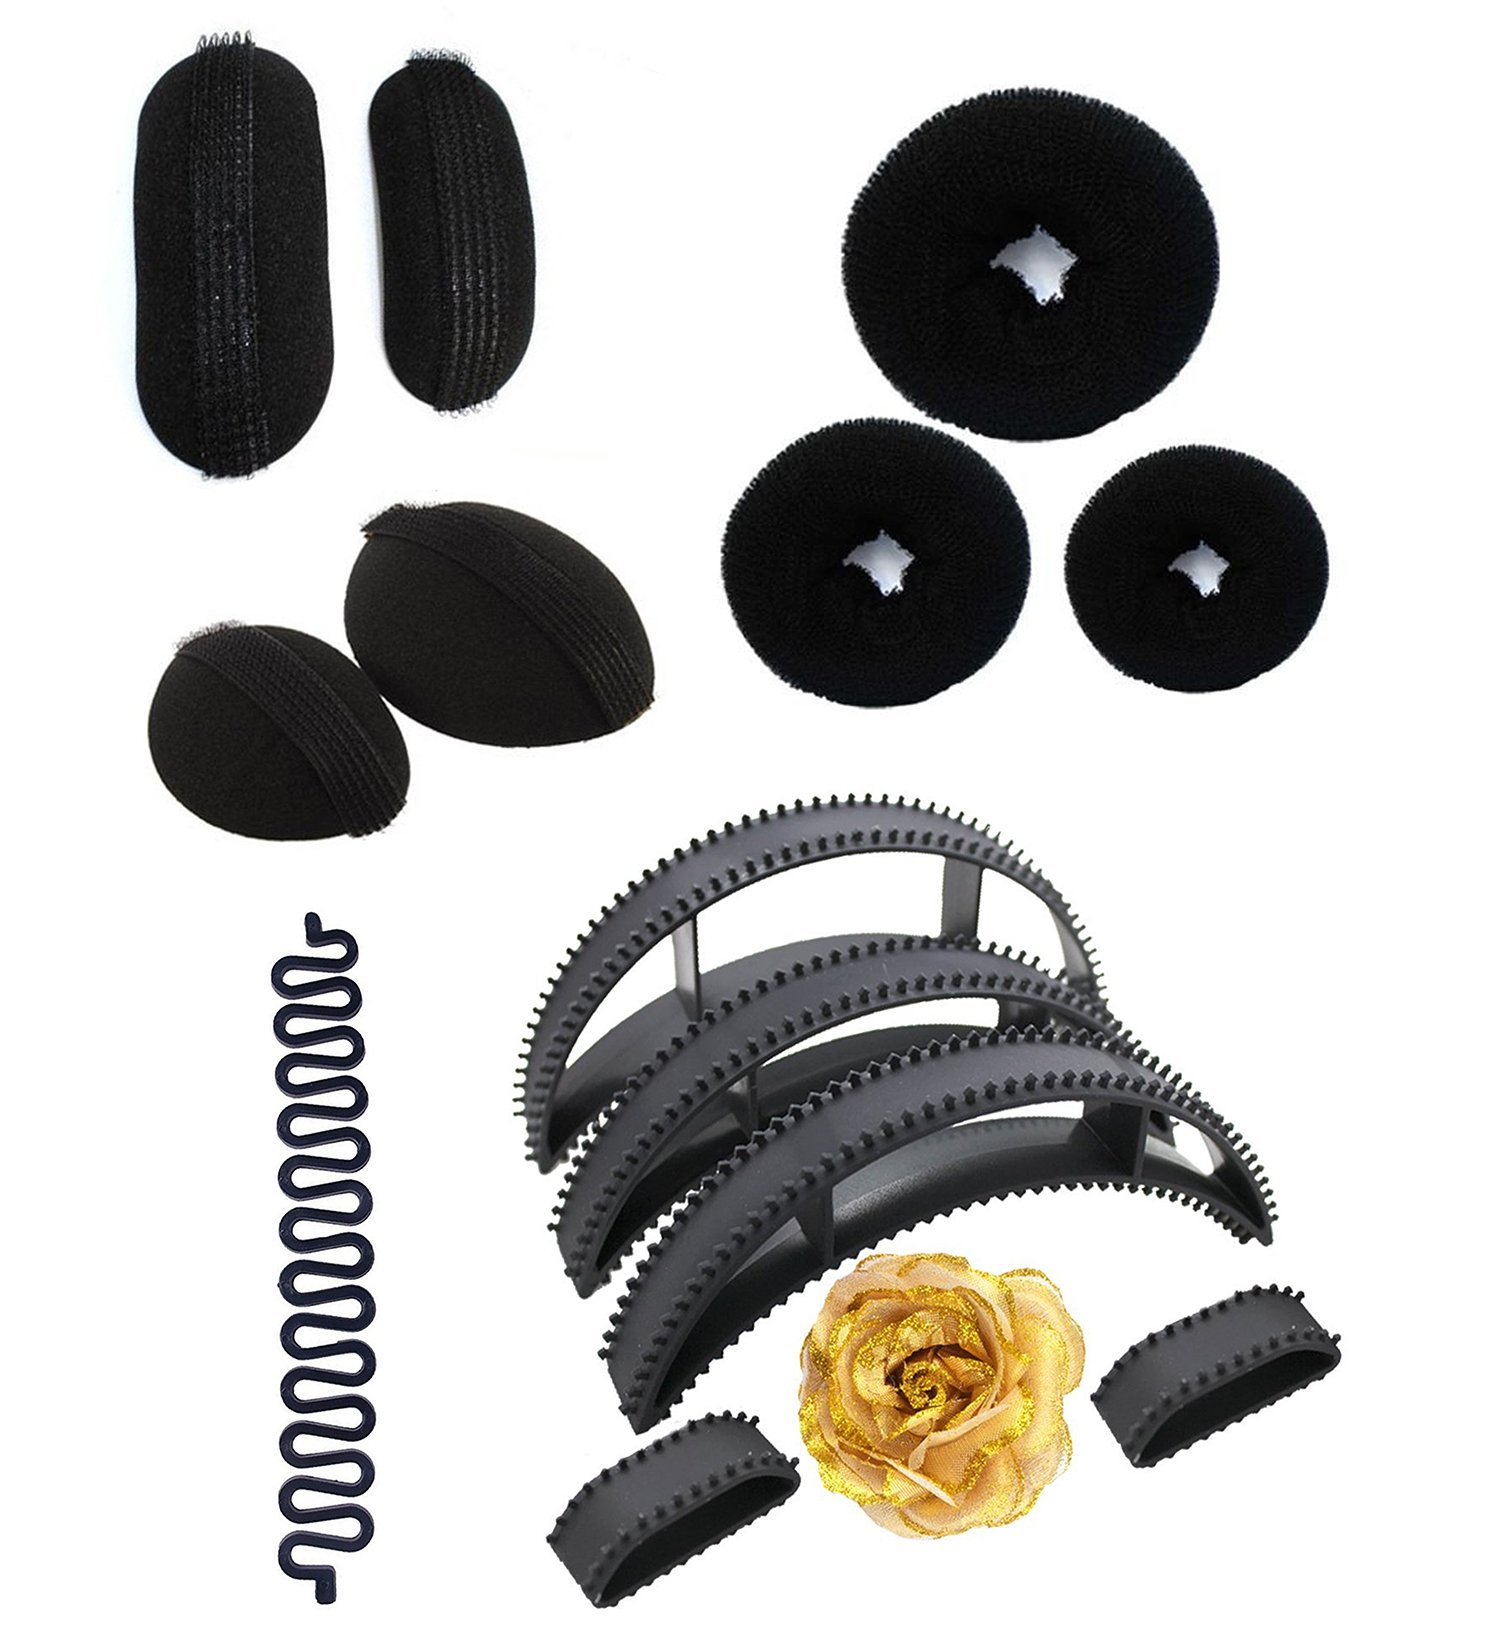 Majik Combo Of Women Hair Accessories Styling Tools, Juda Accessories For Wedding Girls black Pack Of 1 (14 Pcs Combo) product image